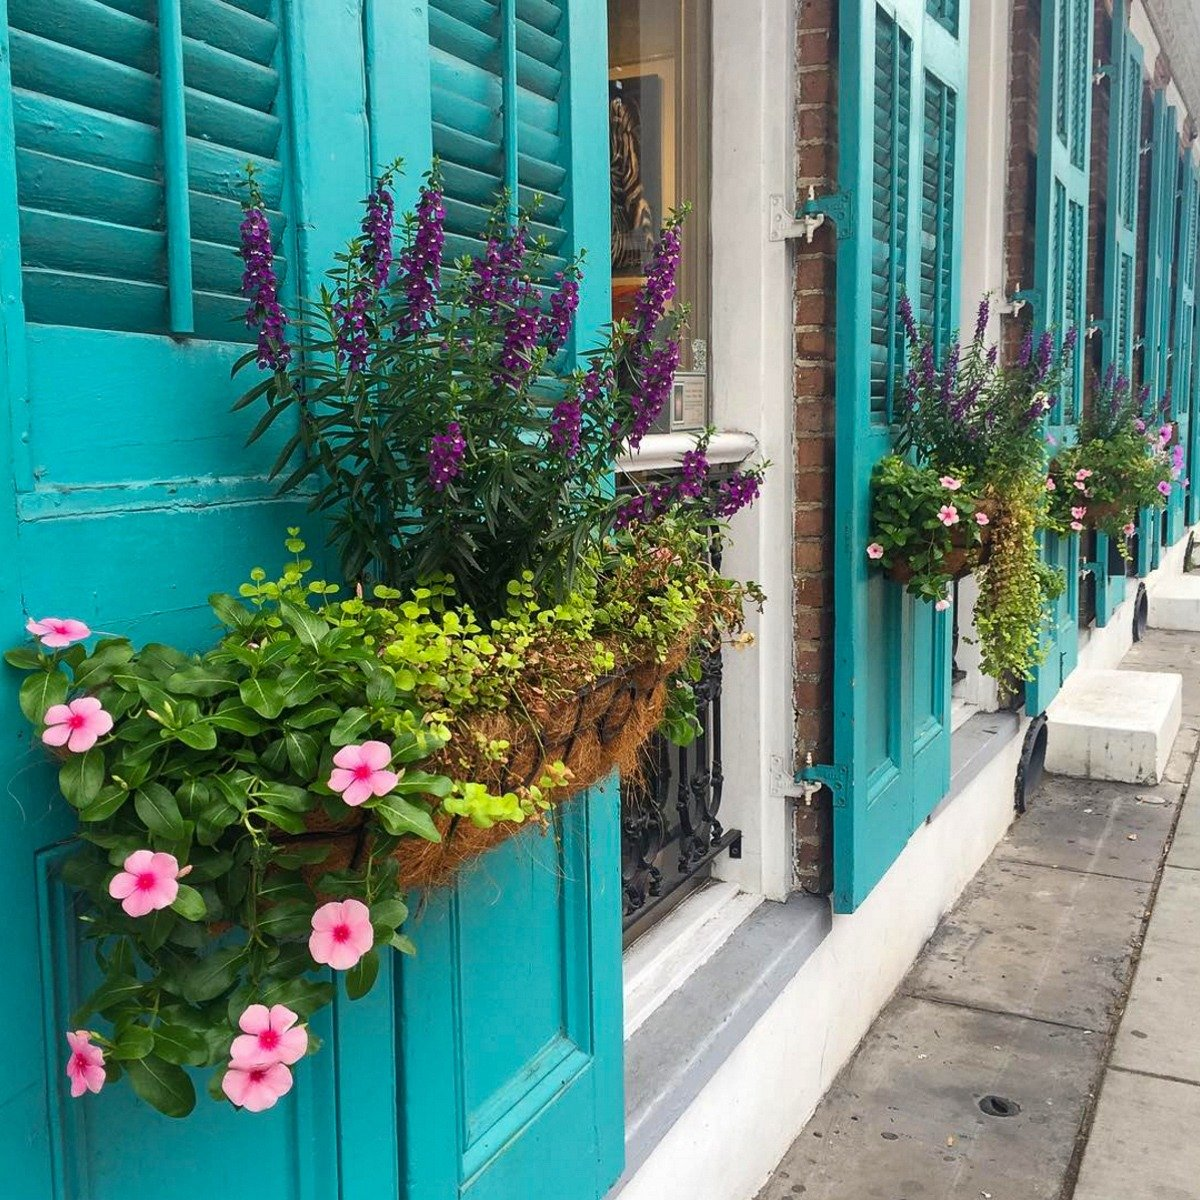 Romantic flower boxes in the French Quarter